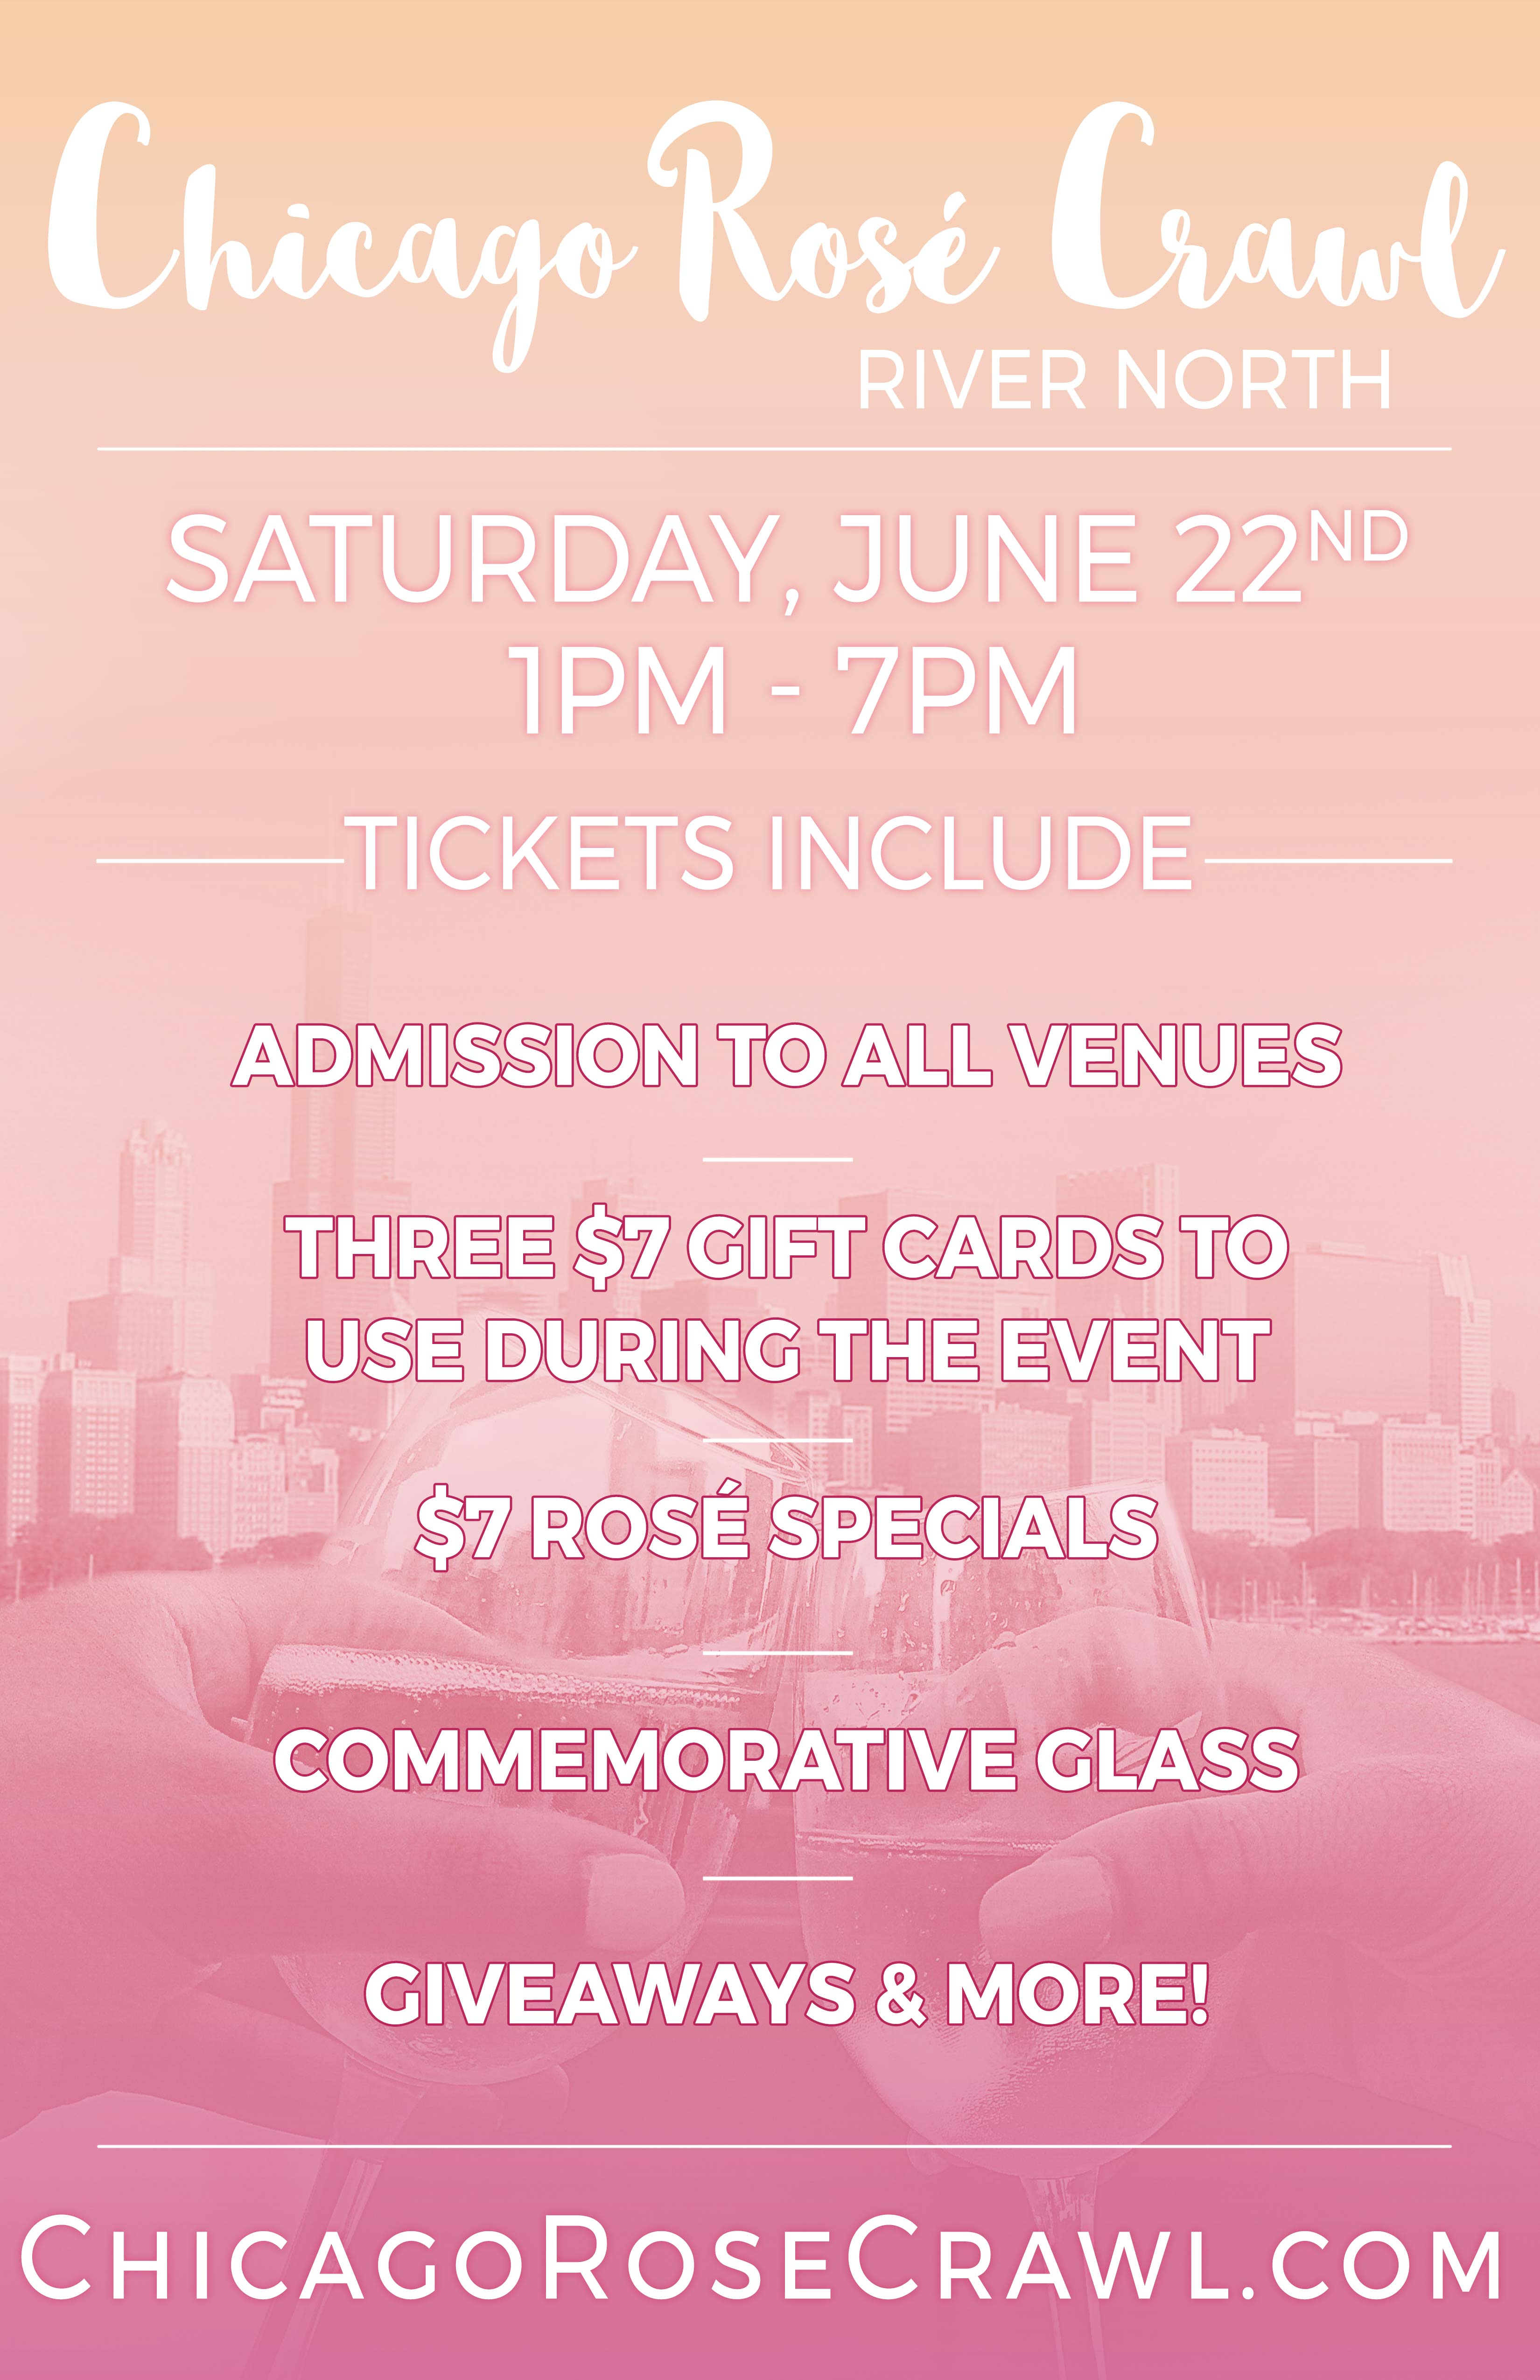 Chicago Rosé Day Bar Crawl Party - Admission to all participating venues, Three $7 Gift Cards To Use During The Event, a Commemorative Glass, Access to Amazing Drink Specials Including $7 Rosé, Giveaways & More!